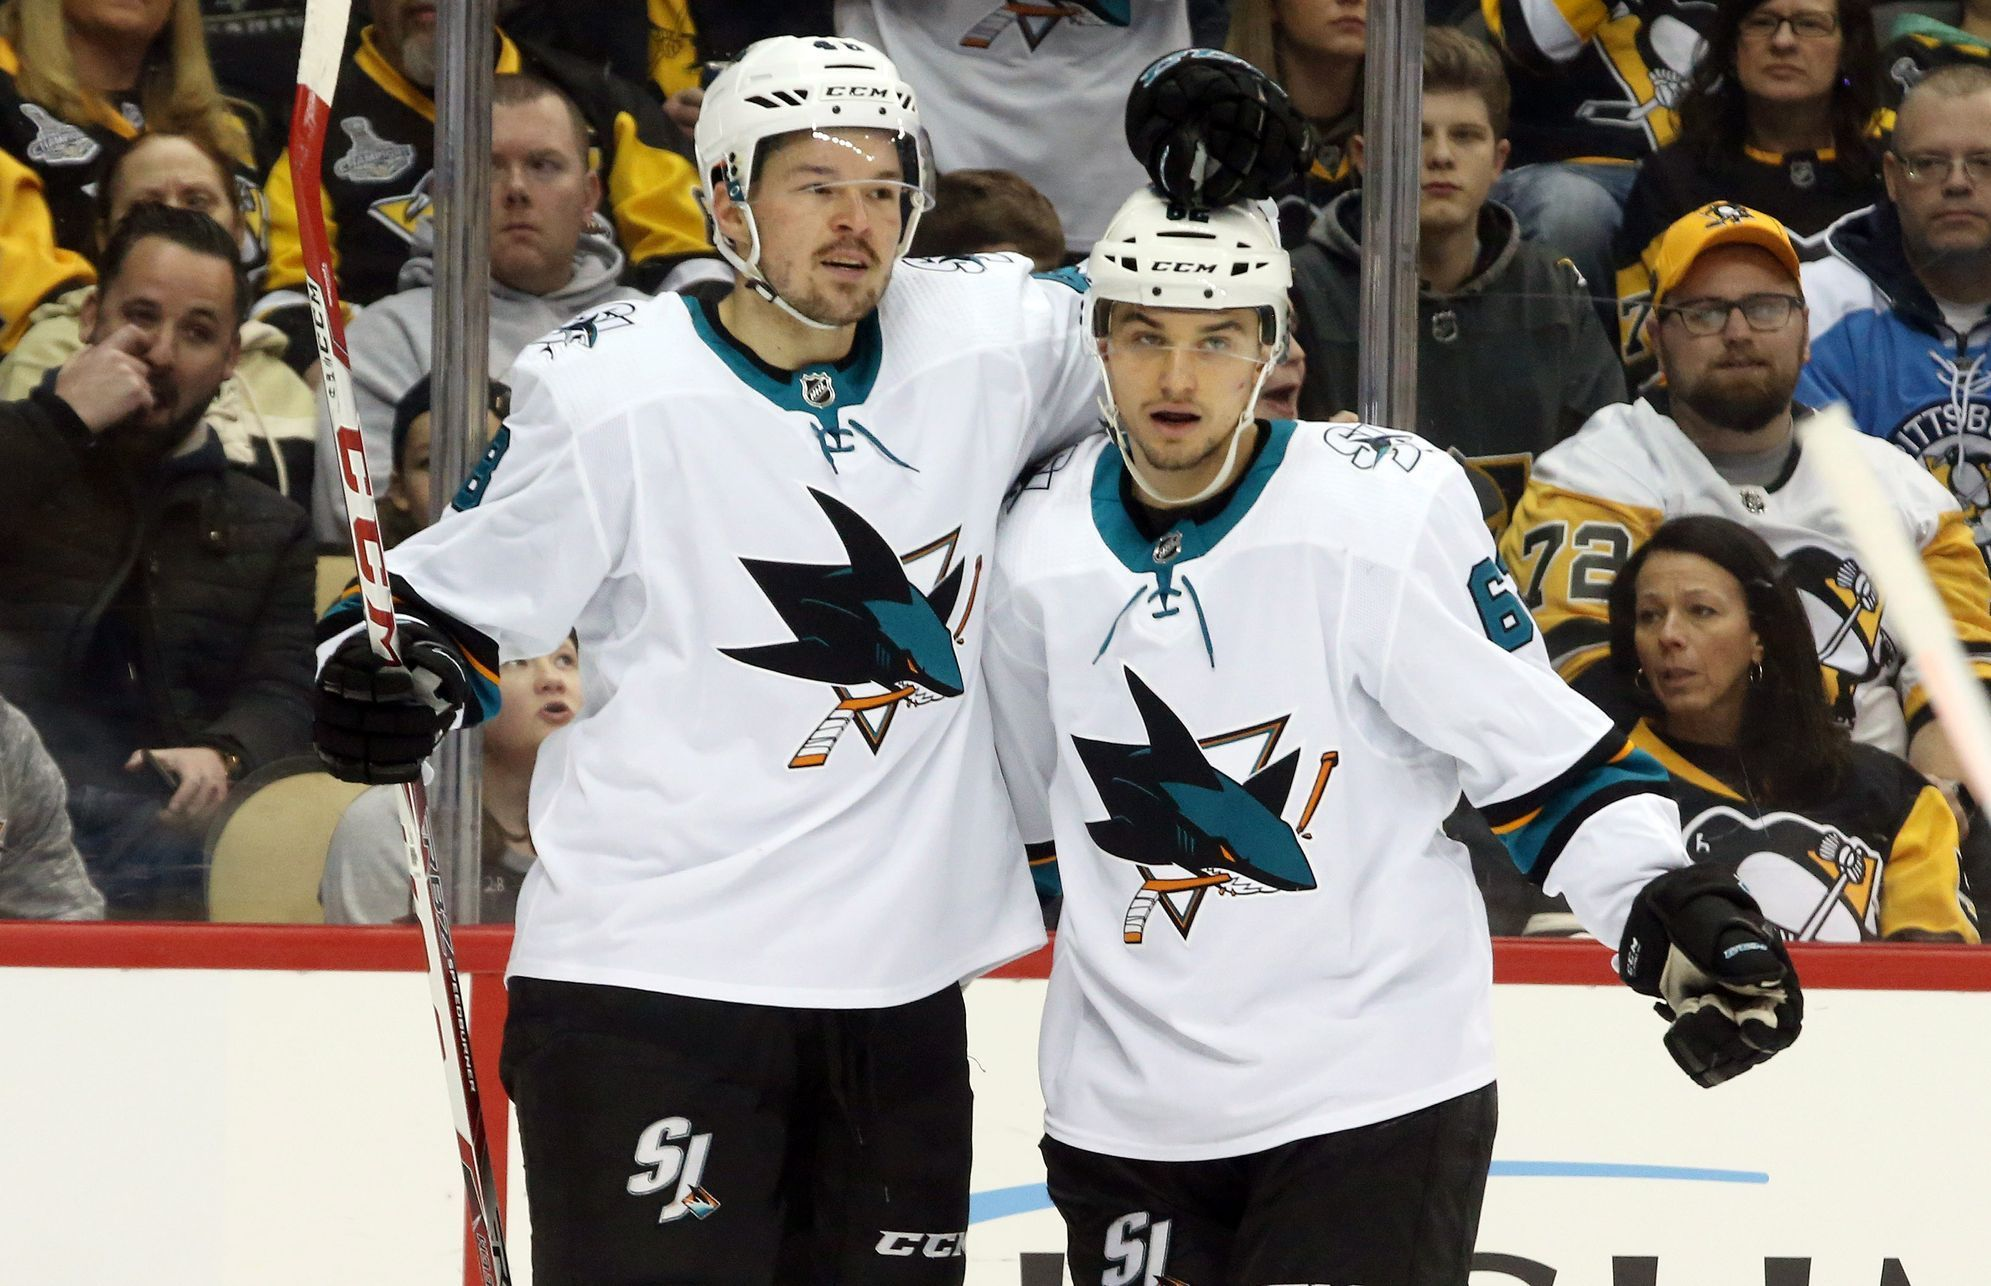 NHL: San Jose Sharks vs Pittsburgh Penguins